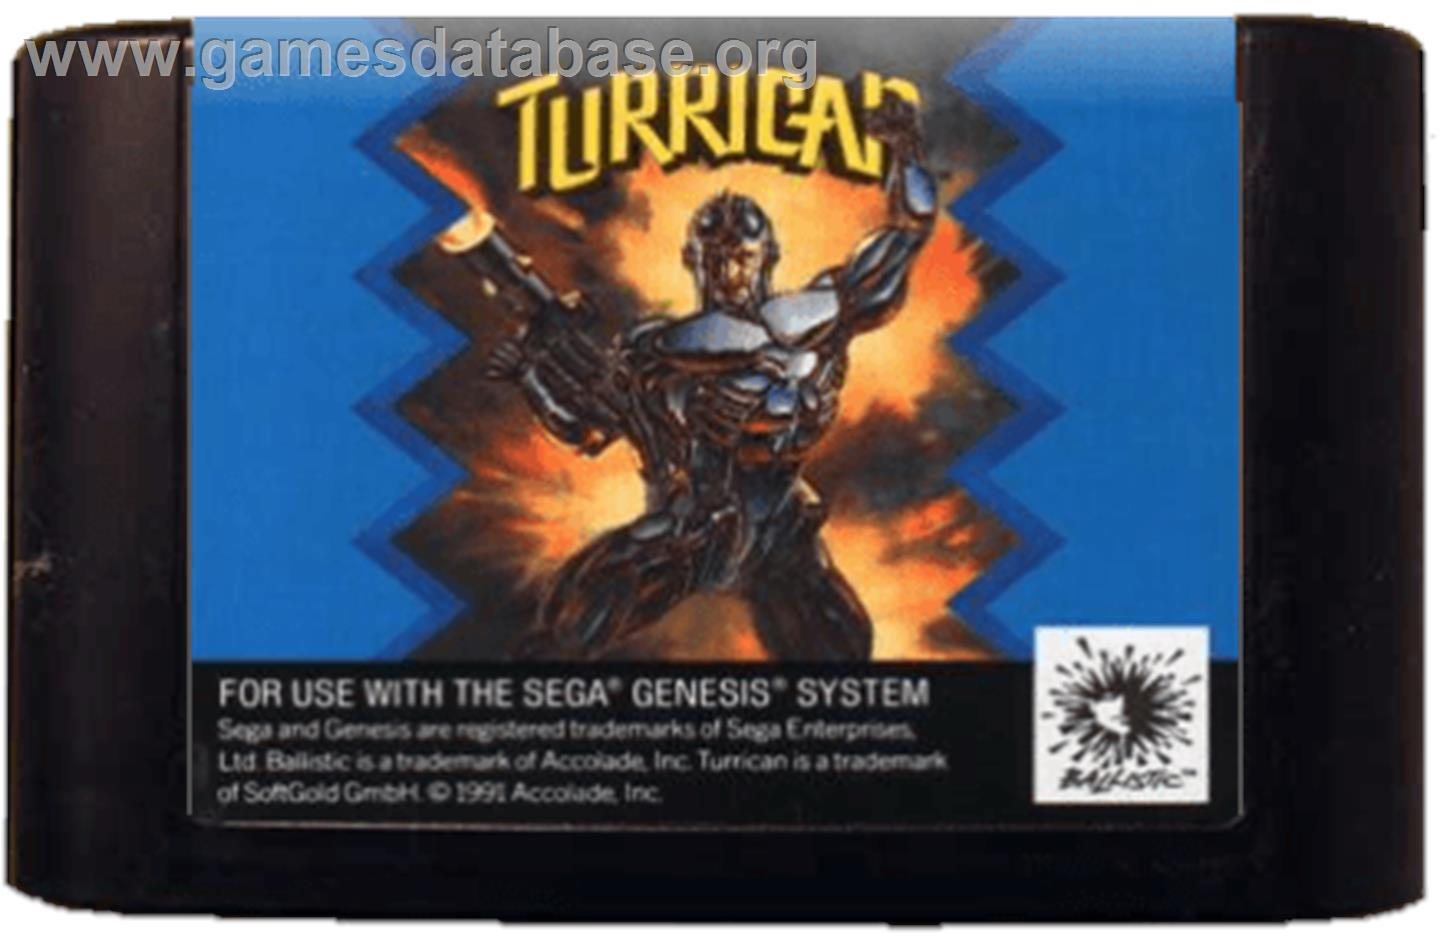 Turrican - Sega Genesis - Artwork - Cartridge